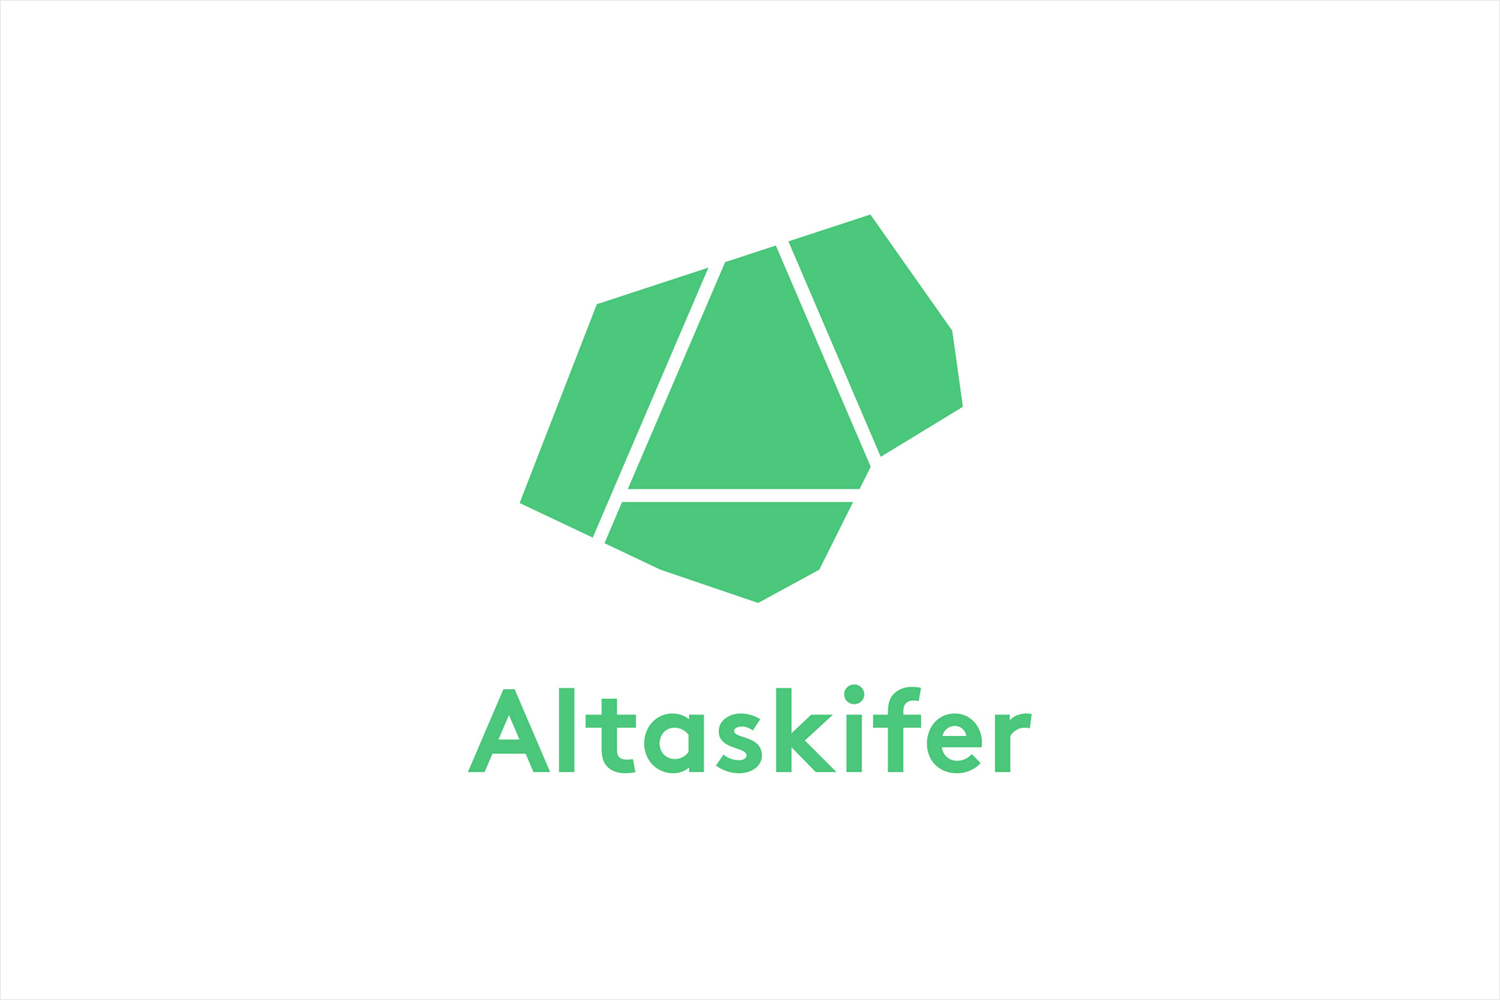 Logo for Alta Quartzite mining and sales business Altaskifer designed by Neue, Norway